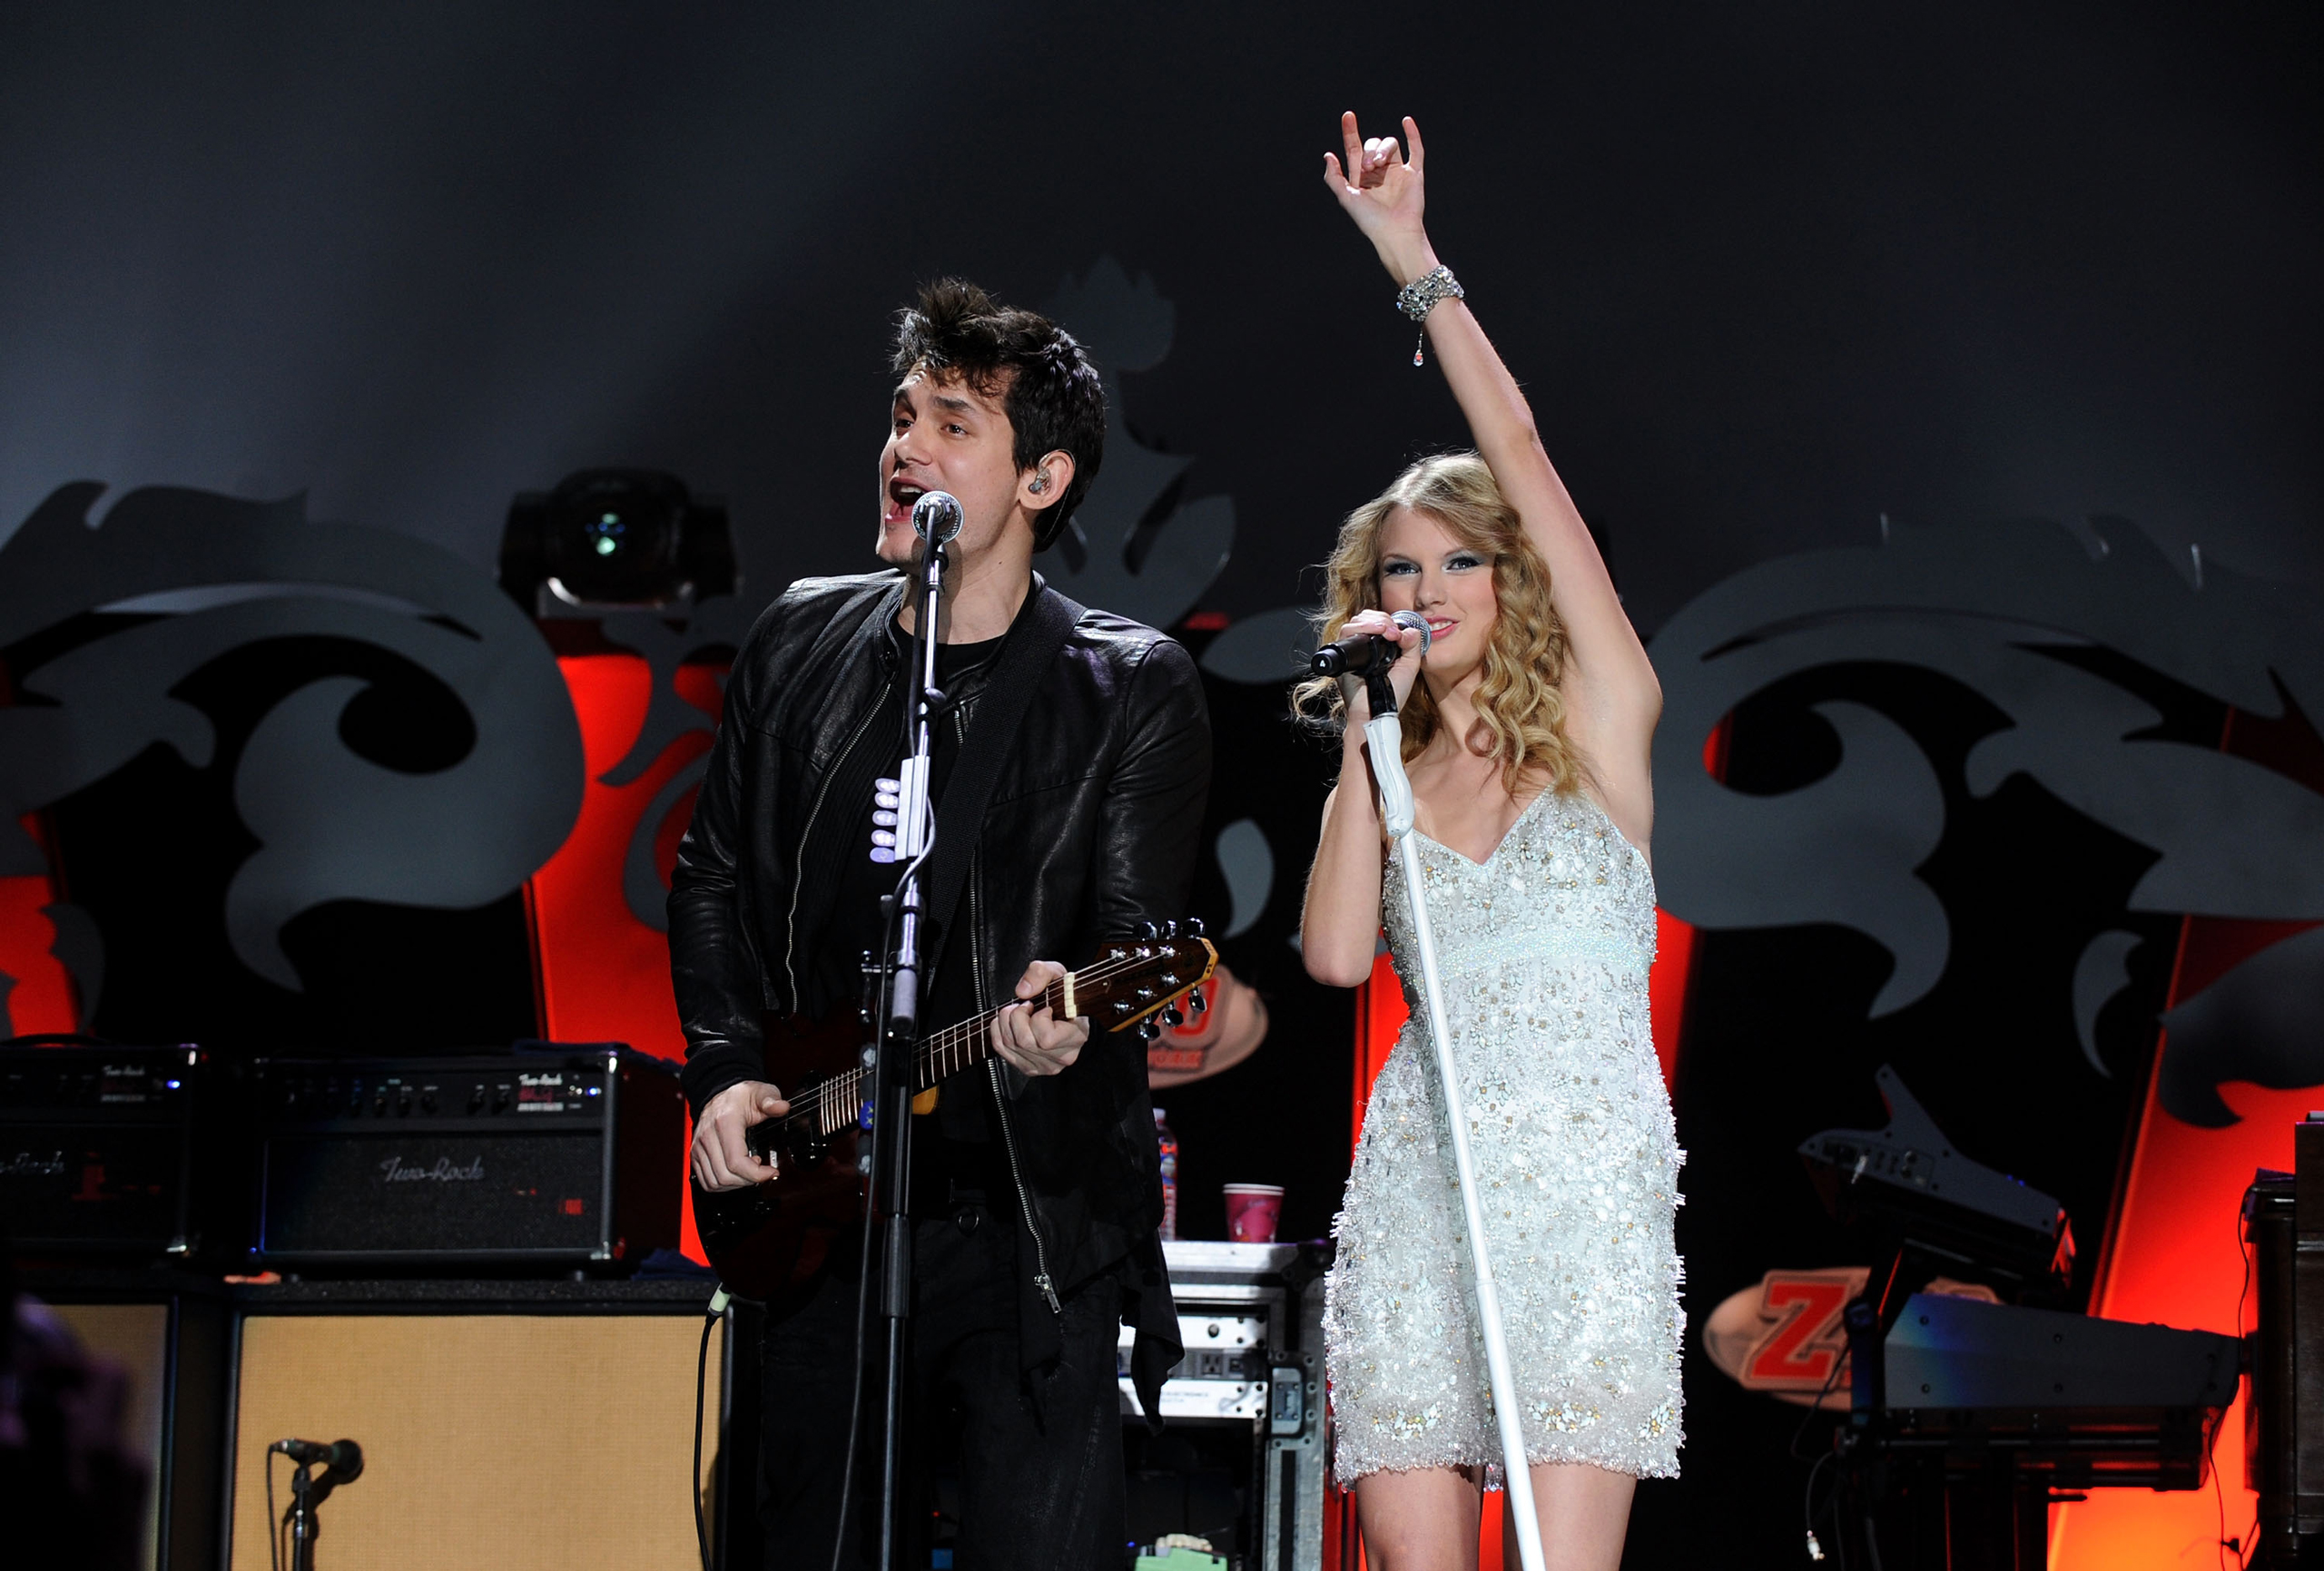 John Mayer and Taylor Swift perform onstage during Z100's Jingle Ball 2009 presented by H&M at Madison Square Garden in New York on Dec. 11, 2009.